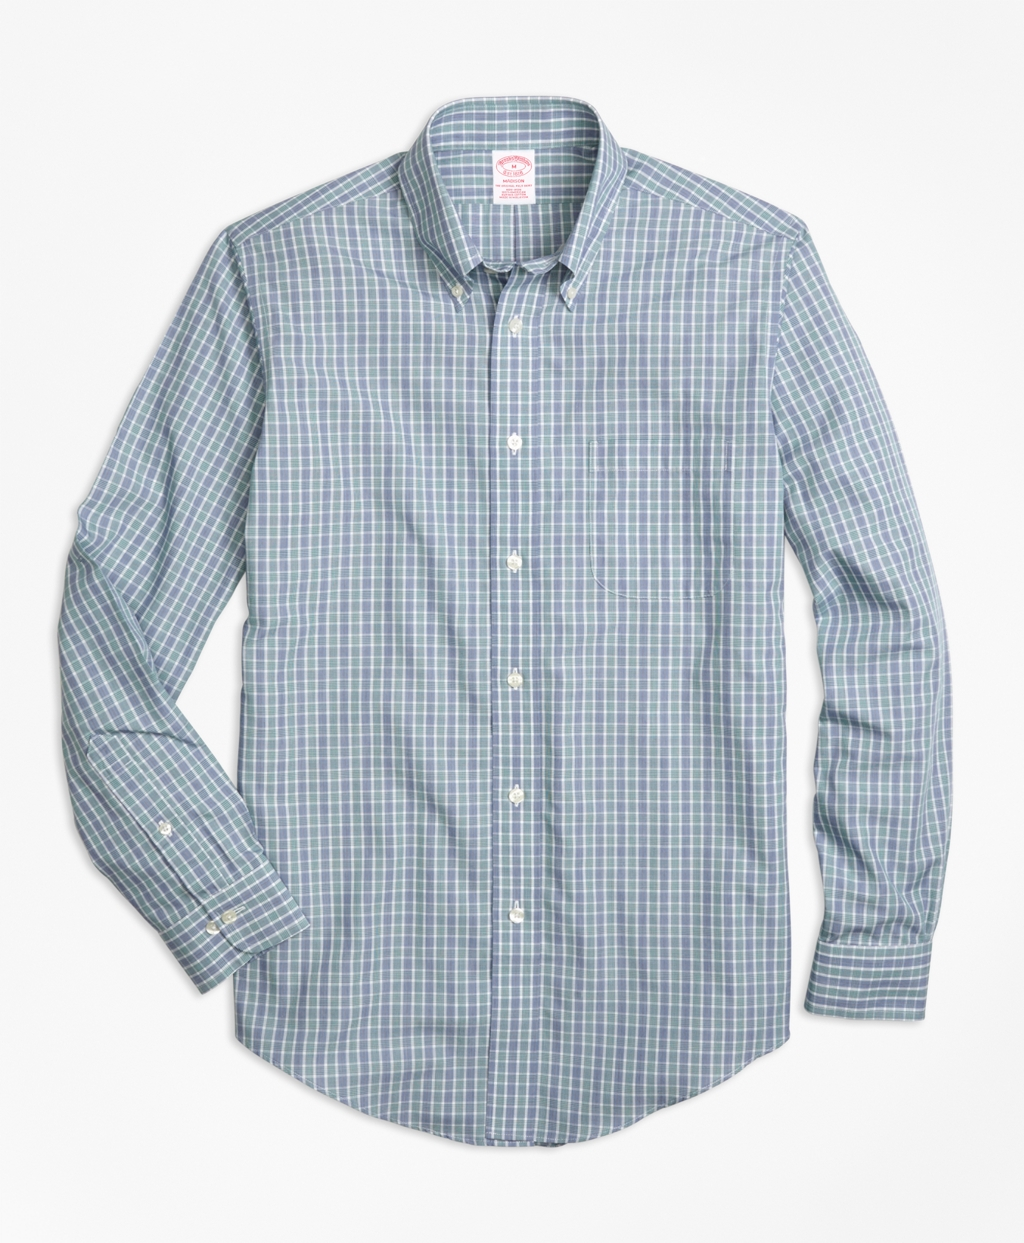 Brooks brothers non iron madison fit green check sport for Brooks brothers non iron shirts review